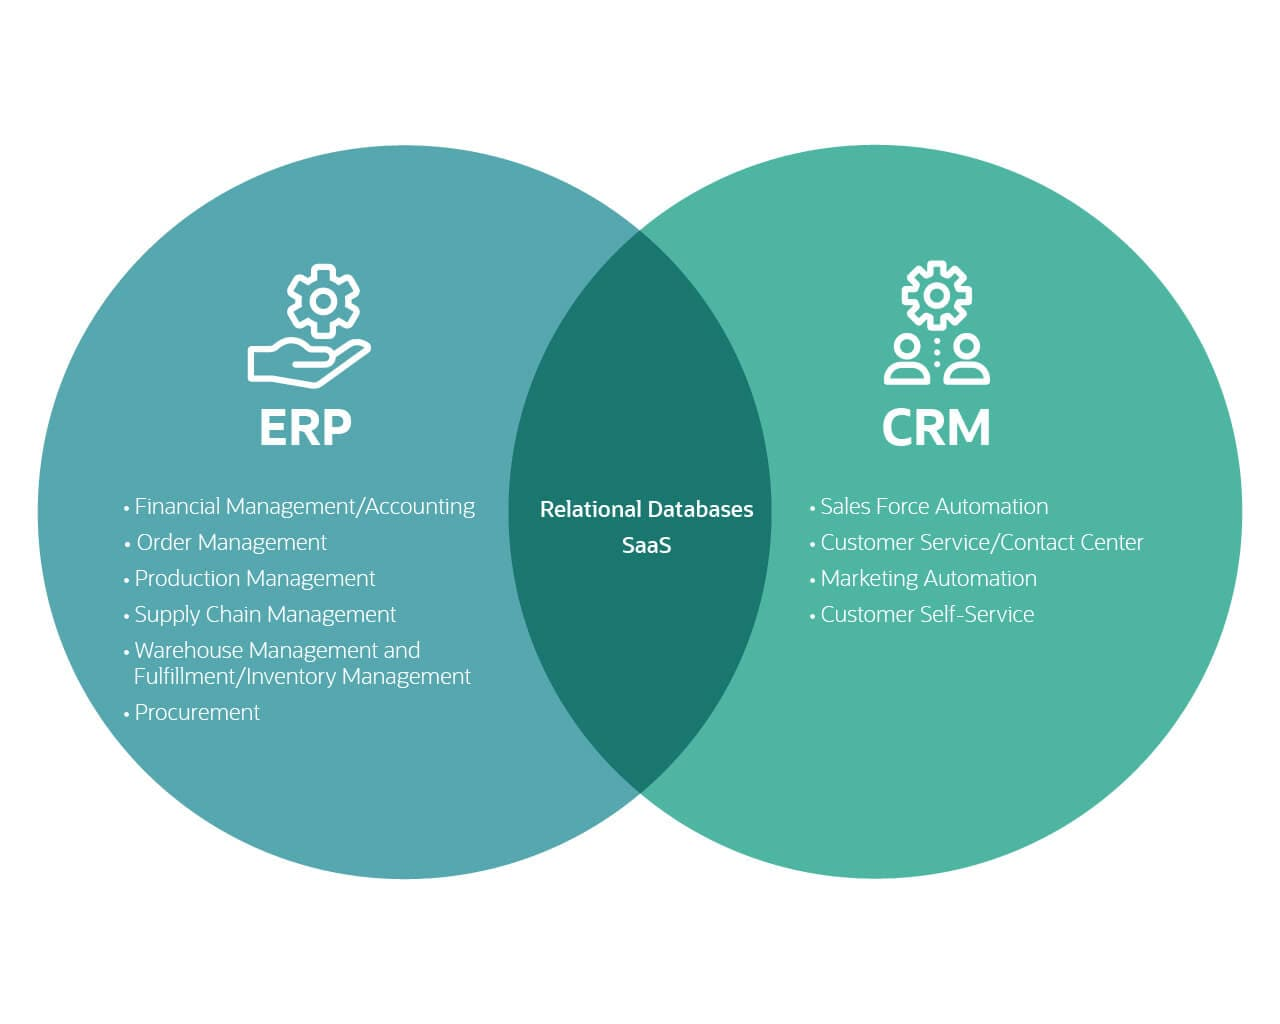 erp vs crm venn diagram